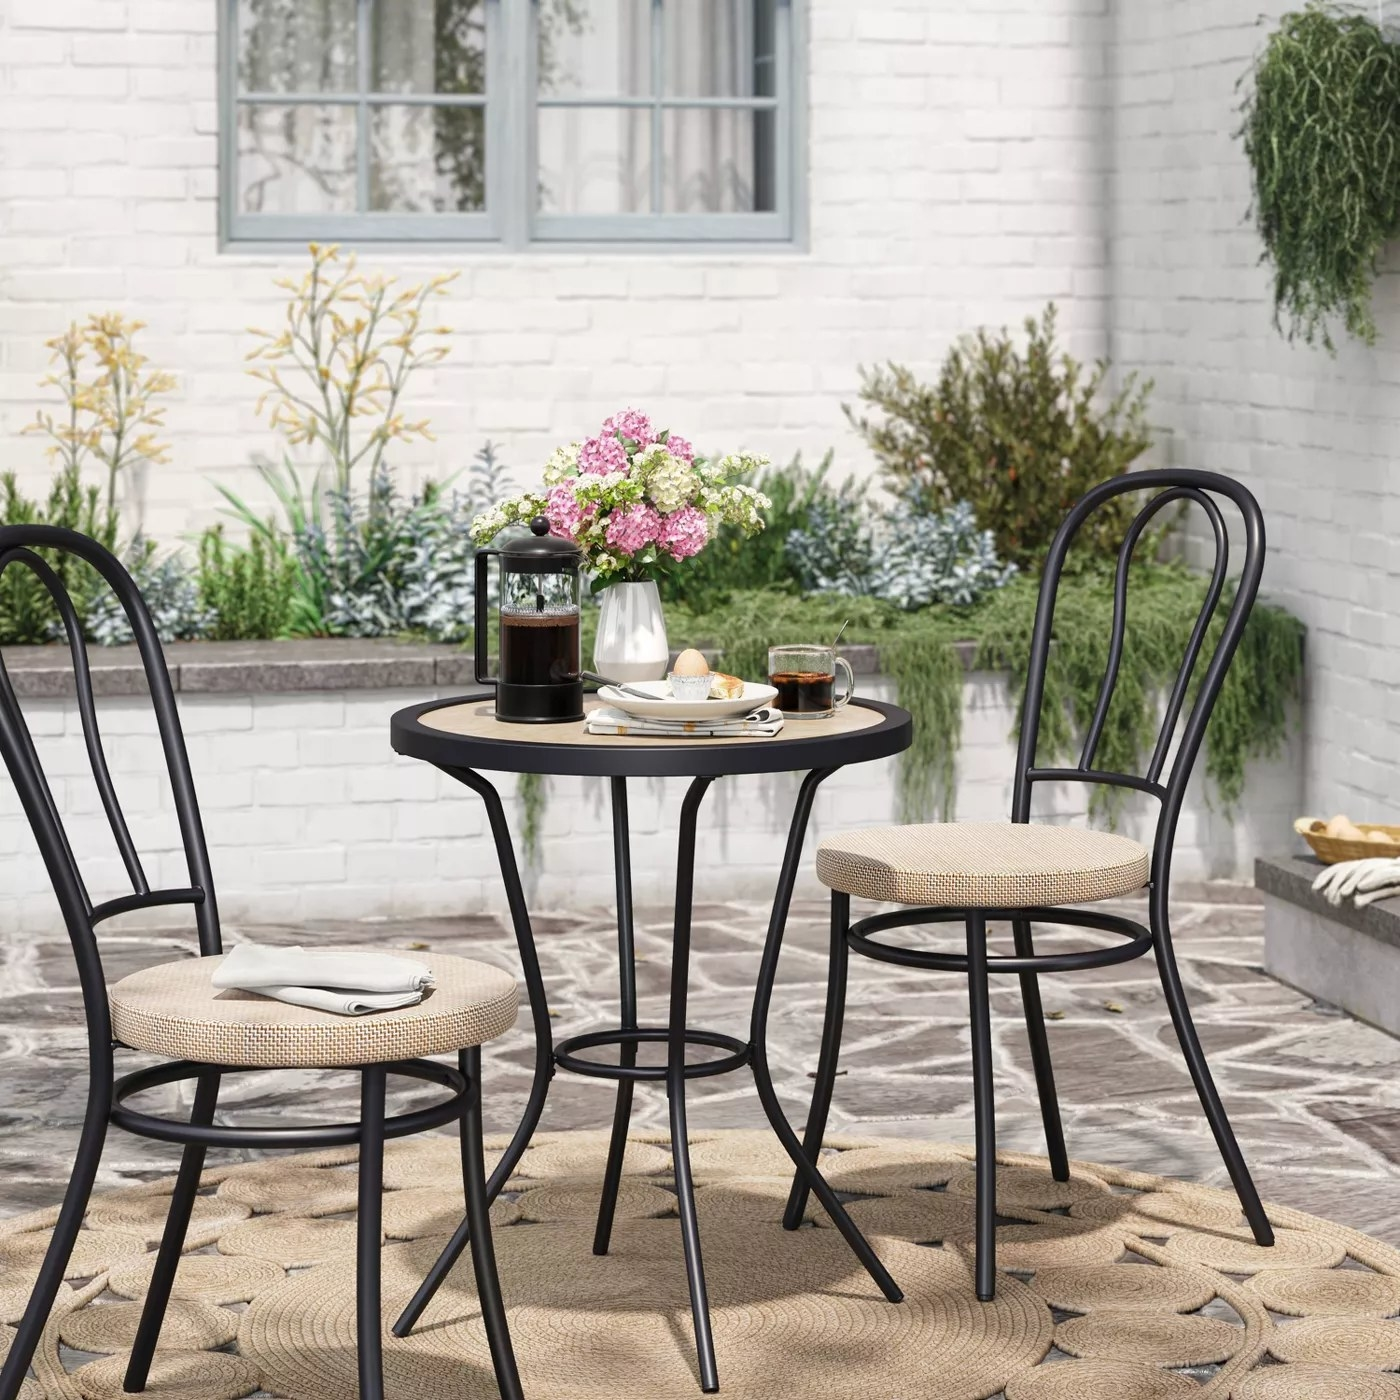 The black and wood patio set in a backyard